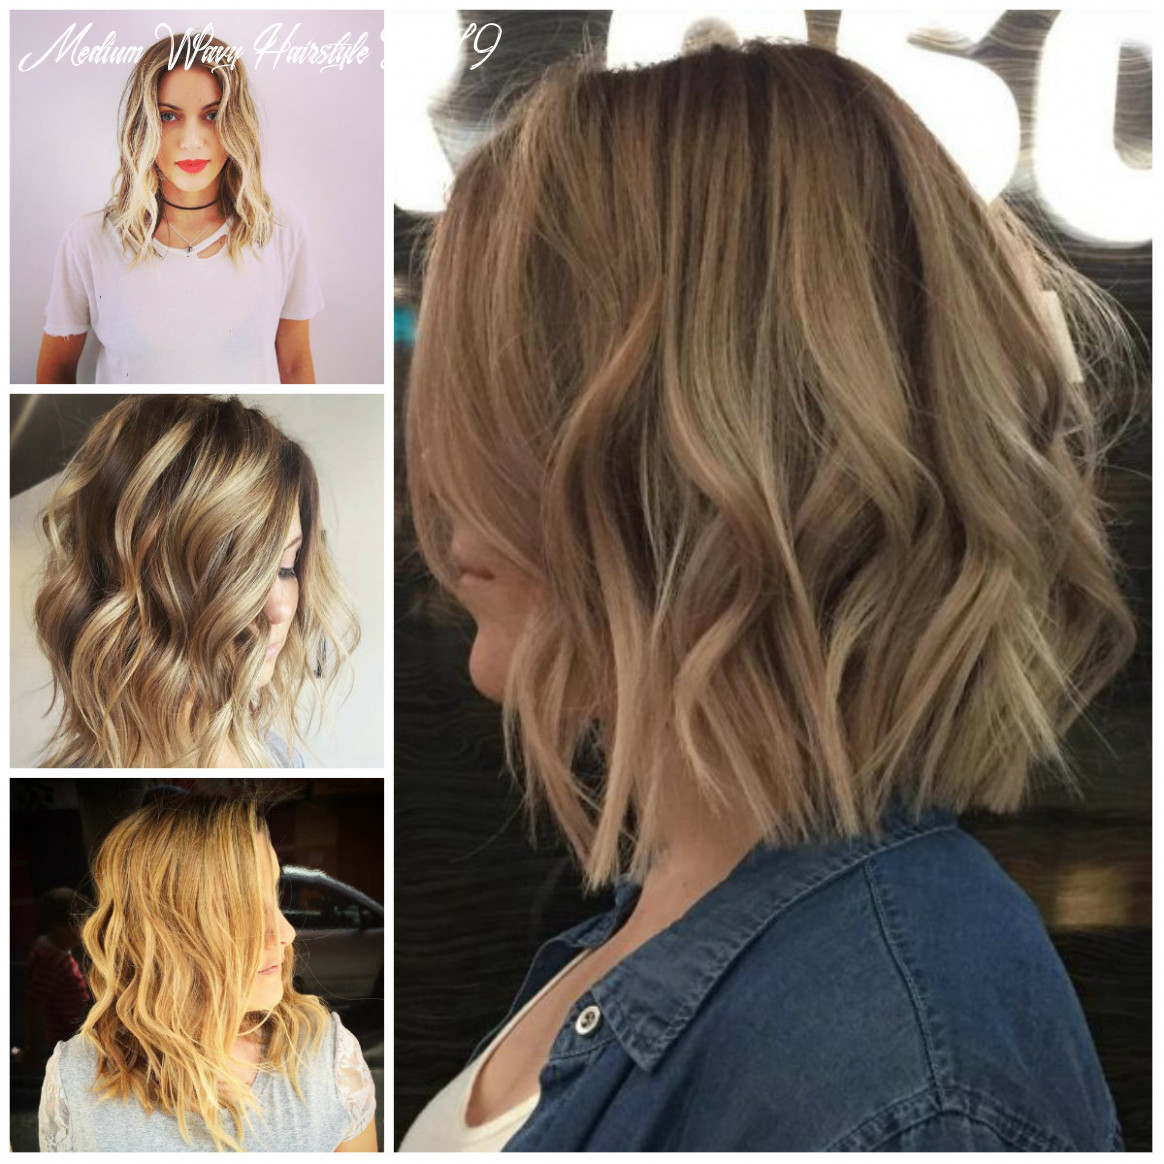 Stylish short wavy hairstyles for 11   11 haircuts, hairstyles